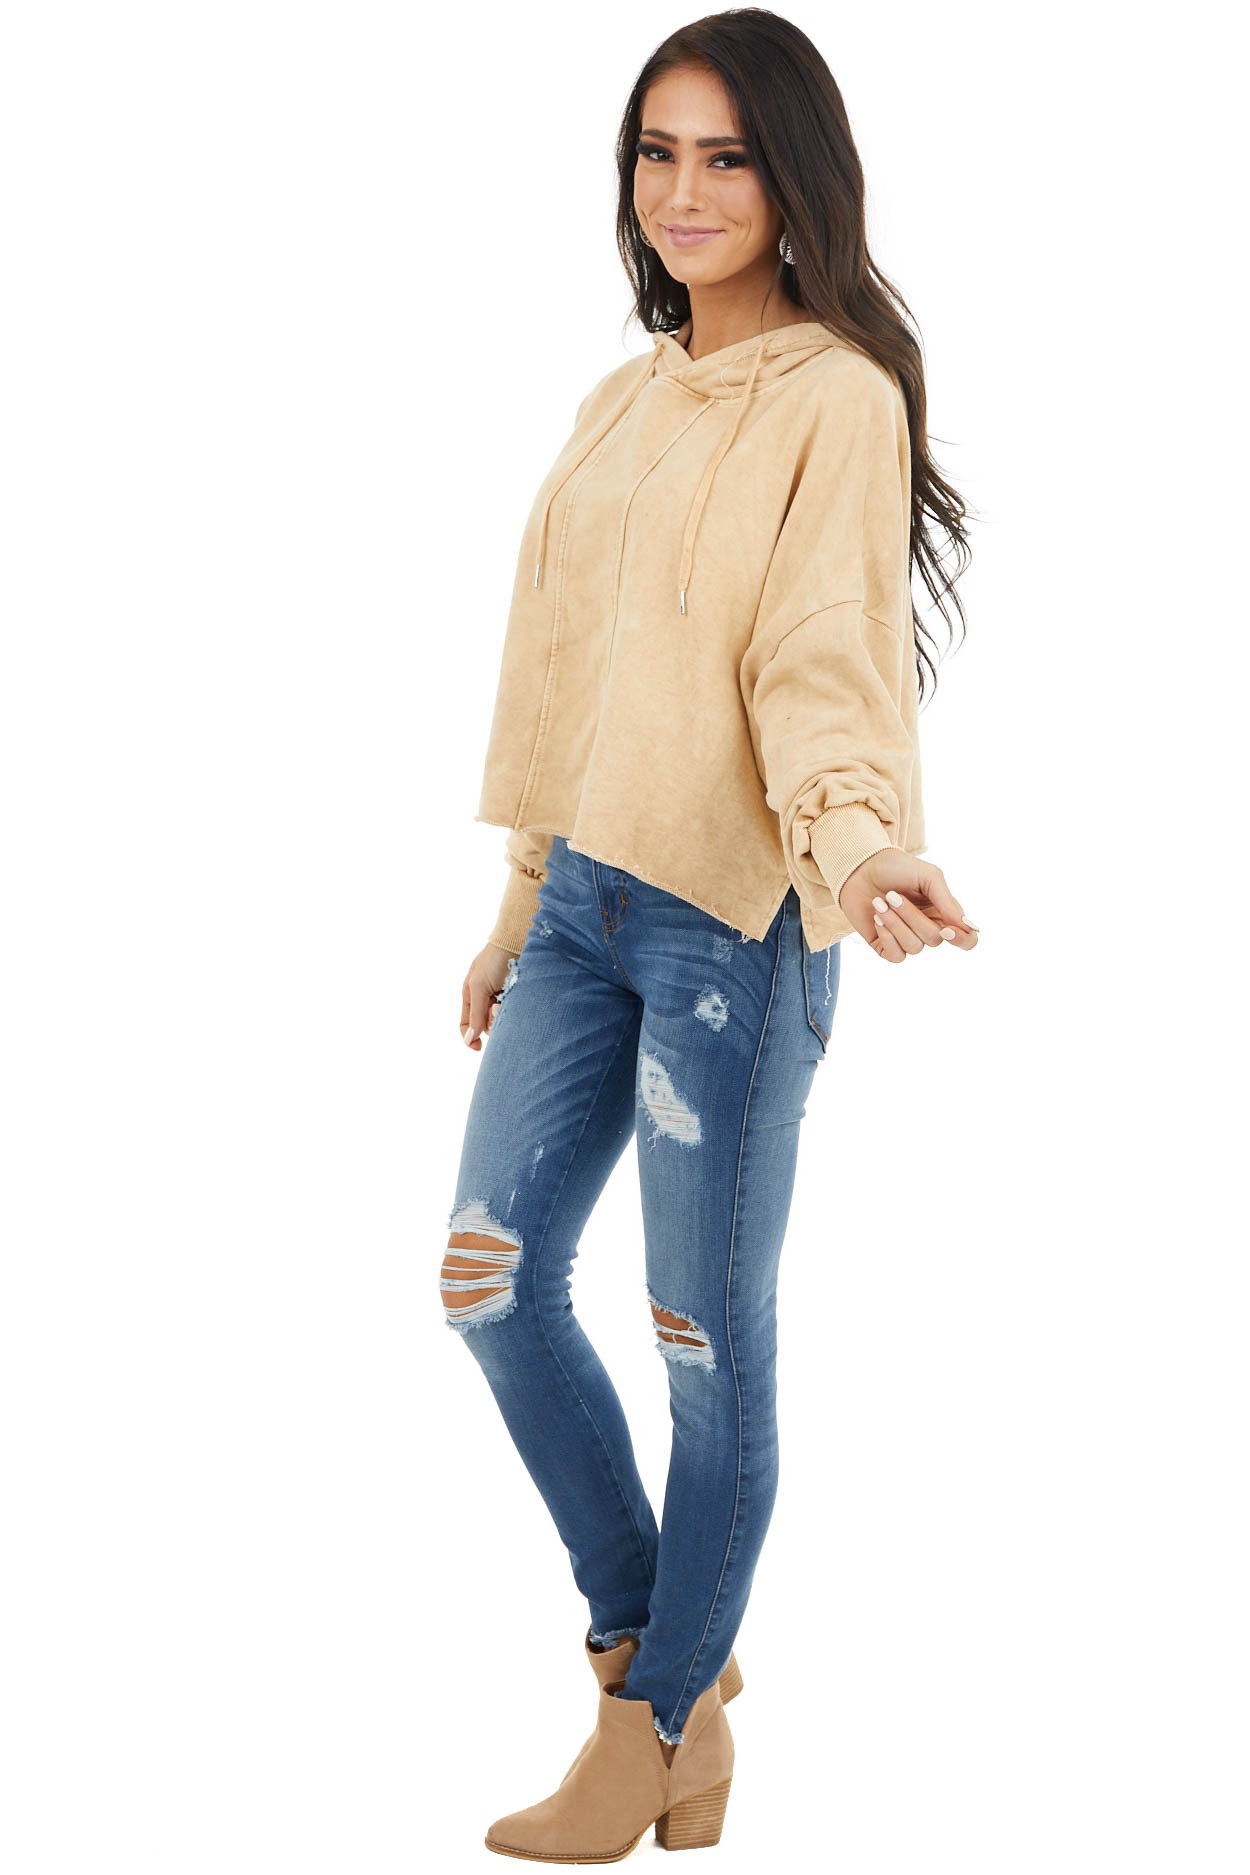 Amber Mineral Wash Cropped Hoodie with Front Seam Details